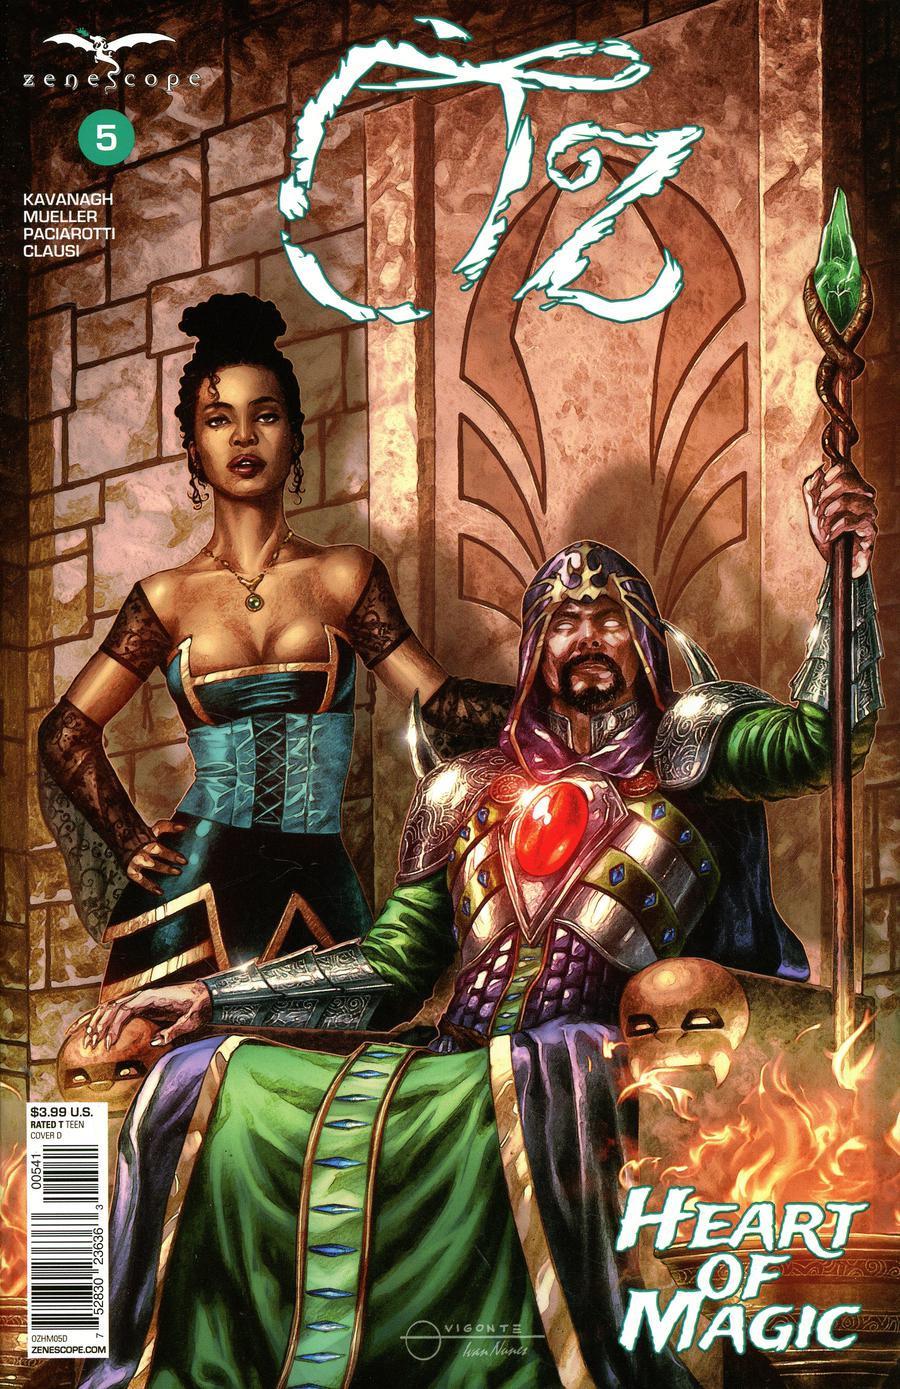 Grimm Fairy Tales Presents Oz Heart Of Magic #5 Cover D Geebo Vigonte